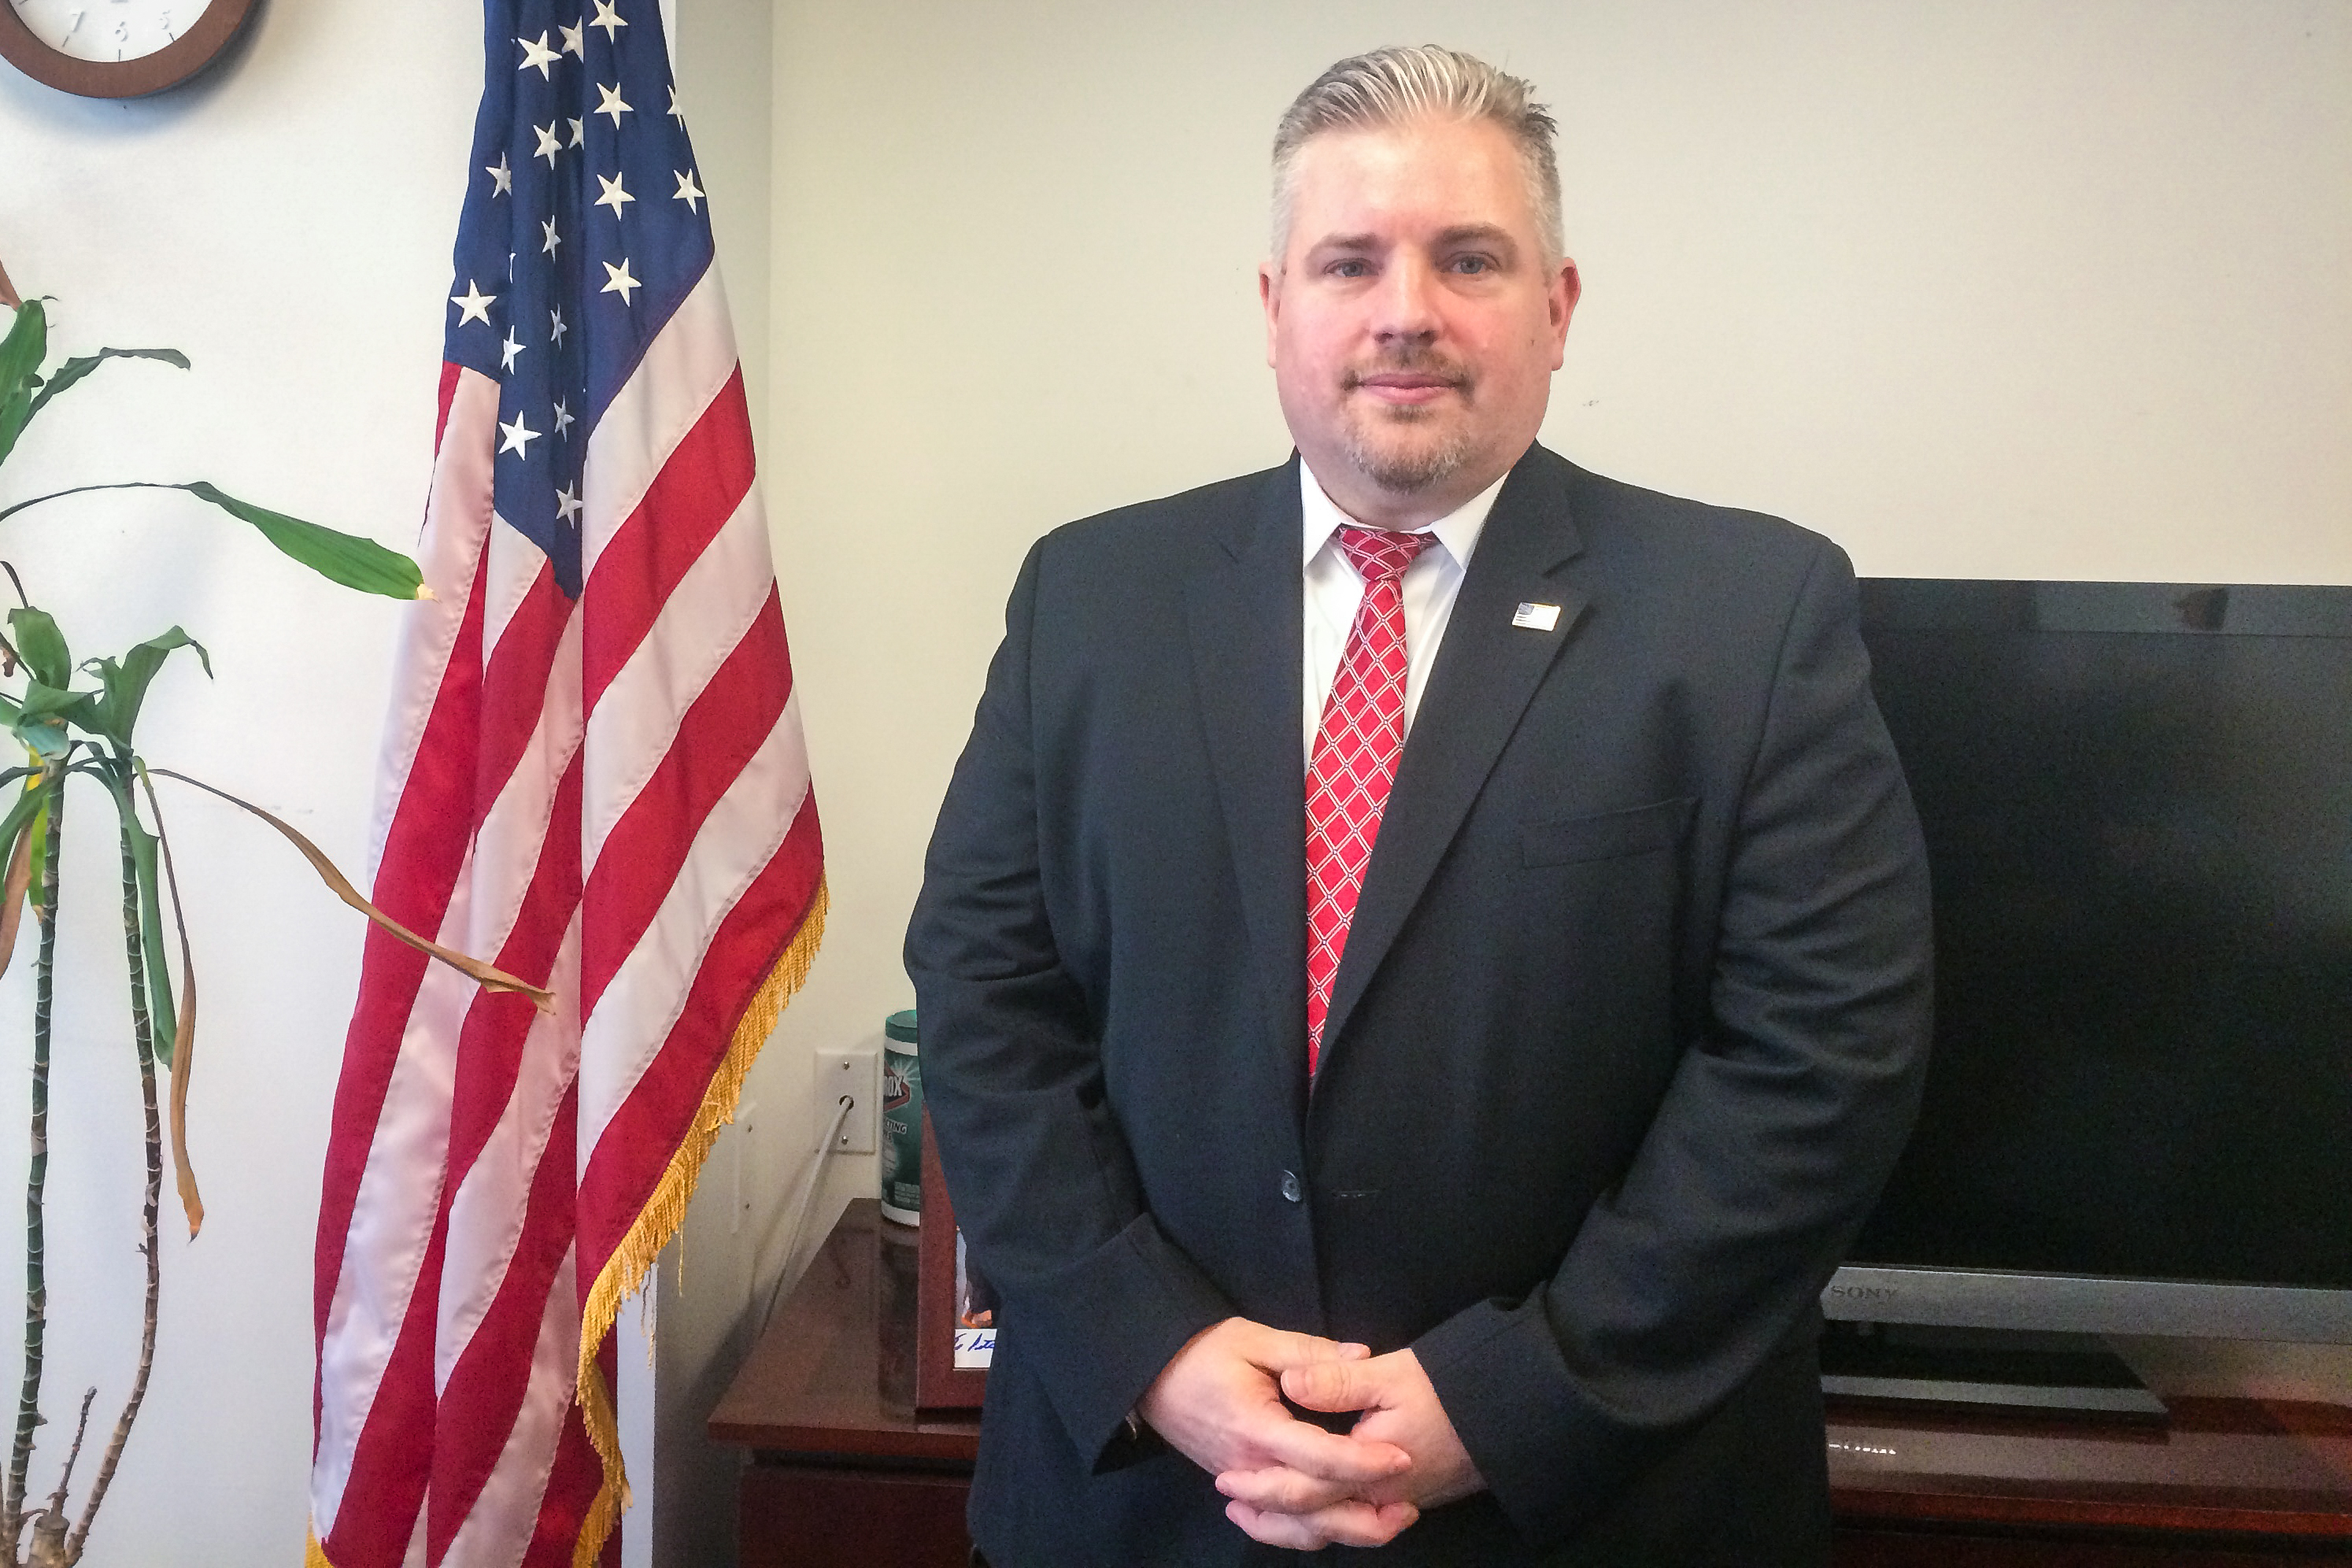 Peter Fitzhugh, deputy special agent in charge for ICE Homeland Security Investigations in New York at his office in Manhattan, May 11, 2017. (Charlotte Cuthbertson/The Epoch Times)